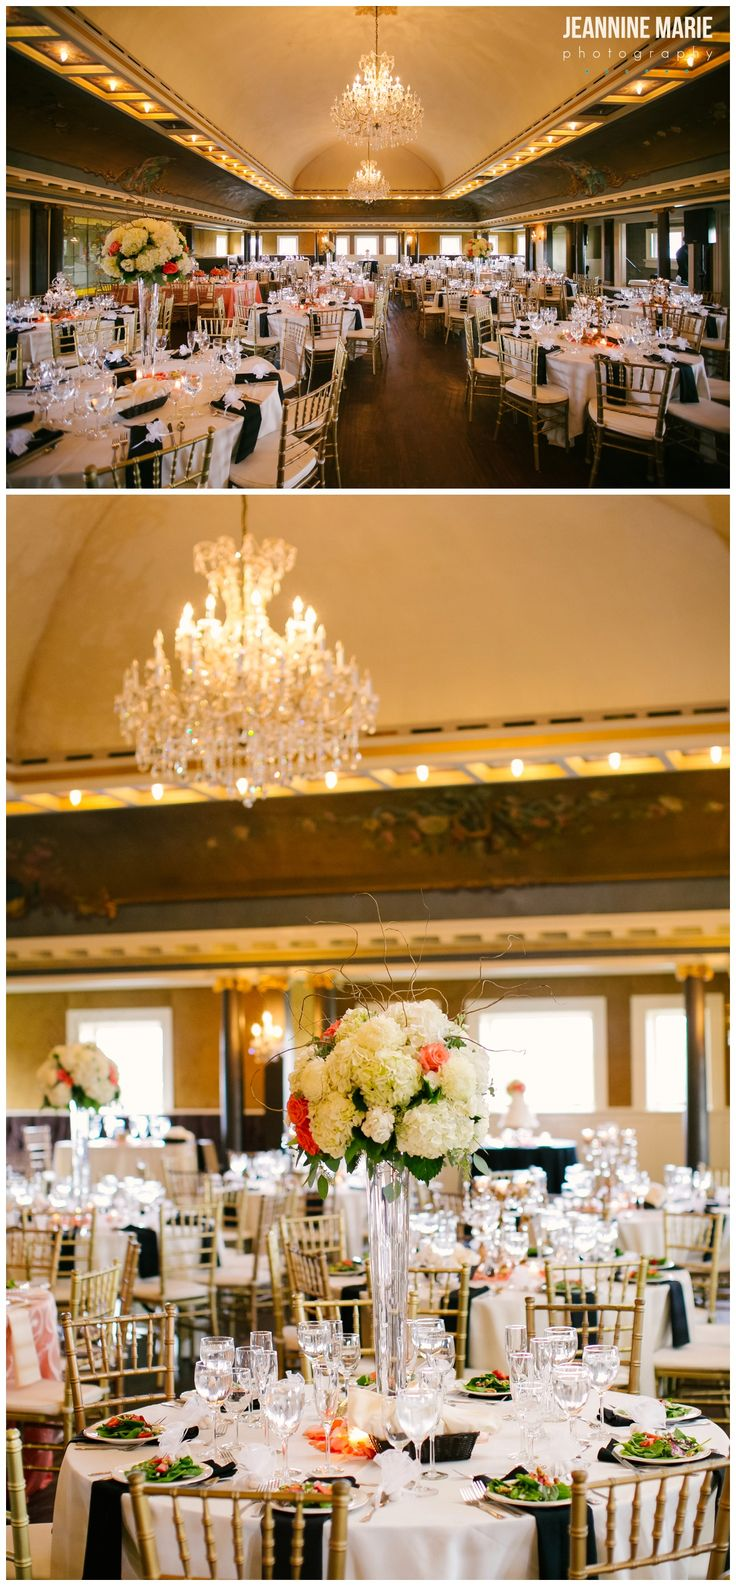 Indoor wedding reception at Semple Mansion in Minnesota. Linens by Apres Party Rental. Floral by Julia's Blooms. Photos by Minneapolis wedding photographer Jeannine Marie Photography. #semplemansion #wedding #weddingreception #weddingdecor #centerpieces #flowers #weddinginspiration #weddingideas #mansionwedding #Minnesotaweddingvenues #minneapolisweddingphotographer #saintpaulweddingphotographer #jeanninemariephotography